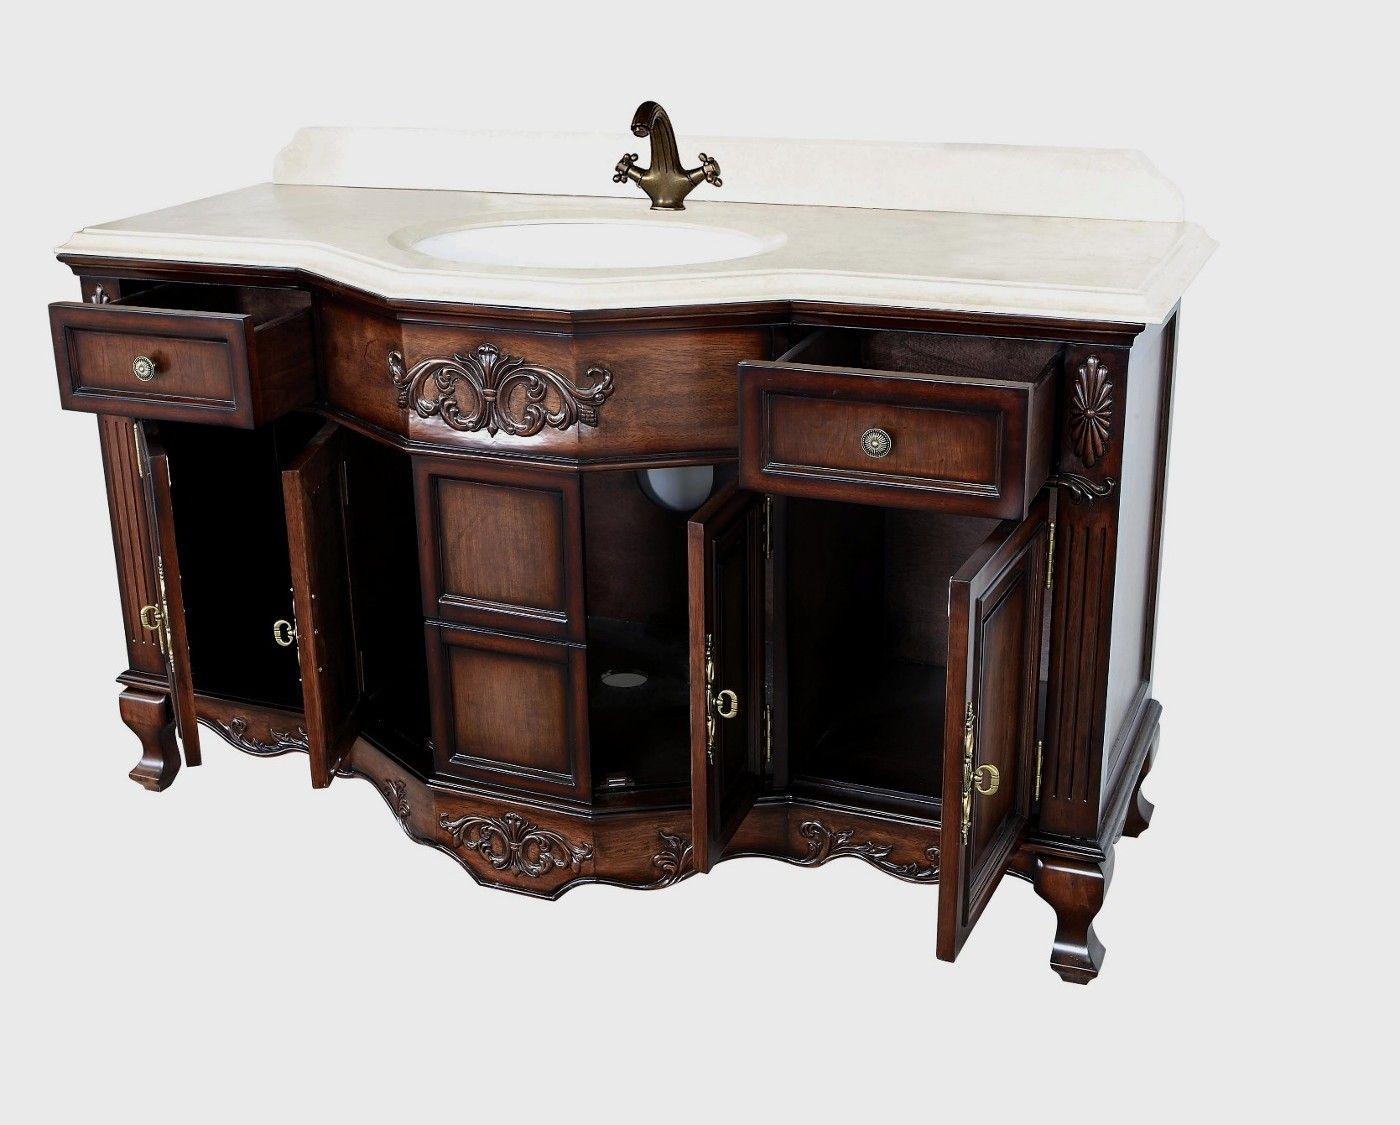 bathroom cabinets vintage style montage antique style bathroom vanity single sink 60 15670